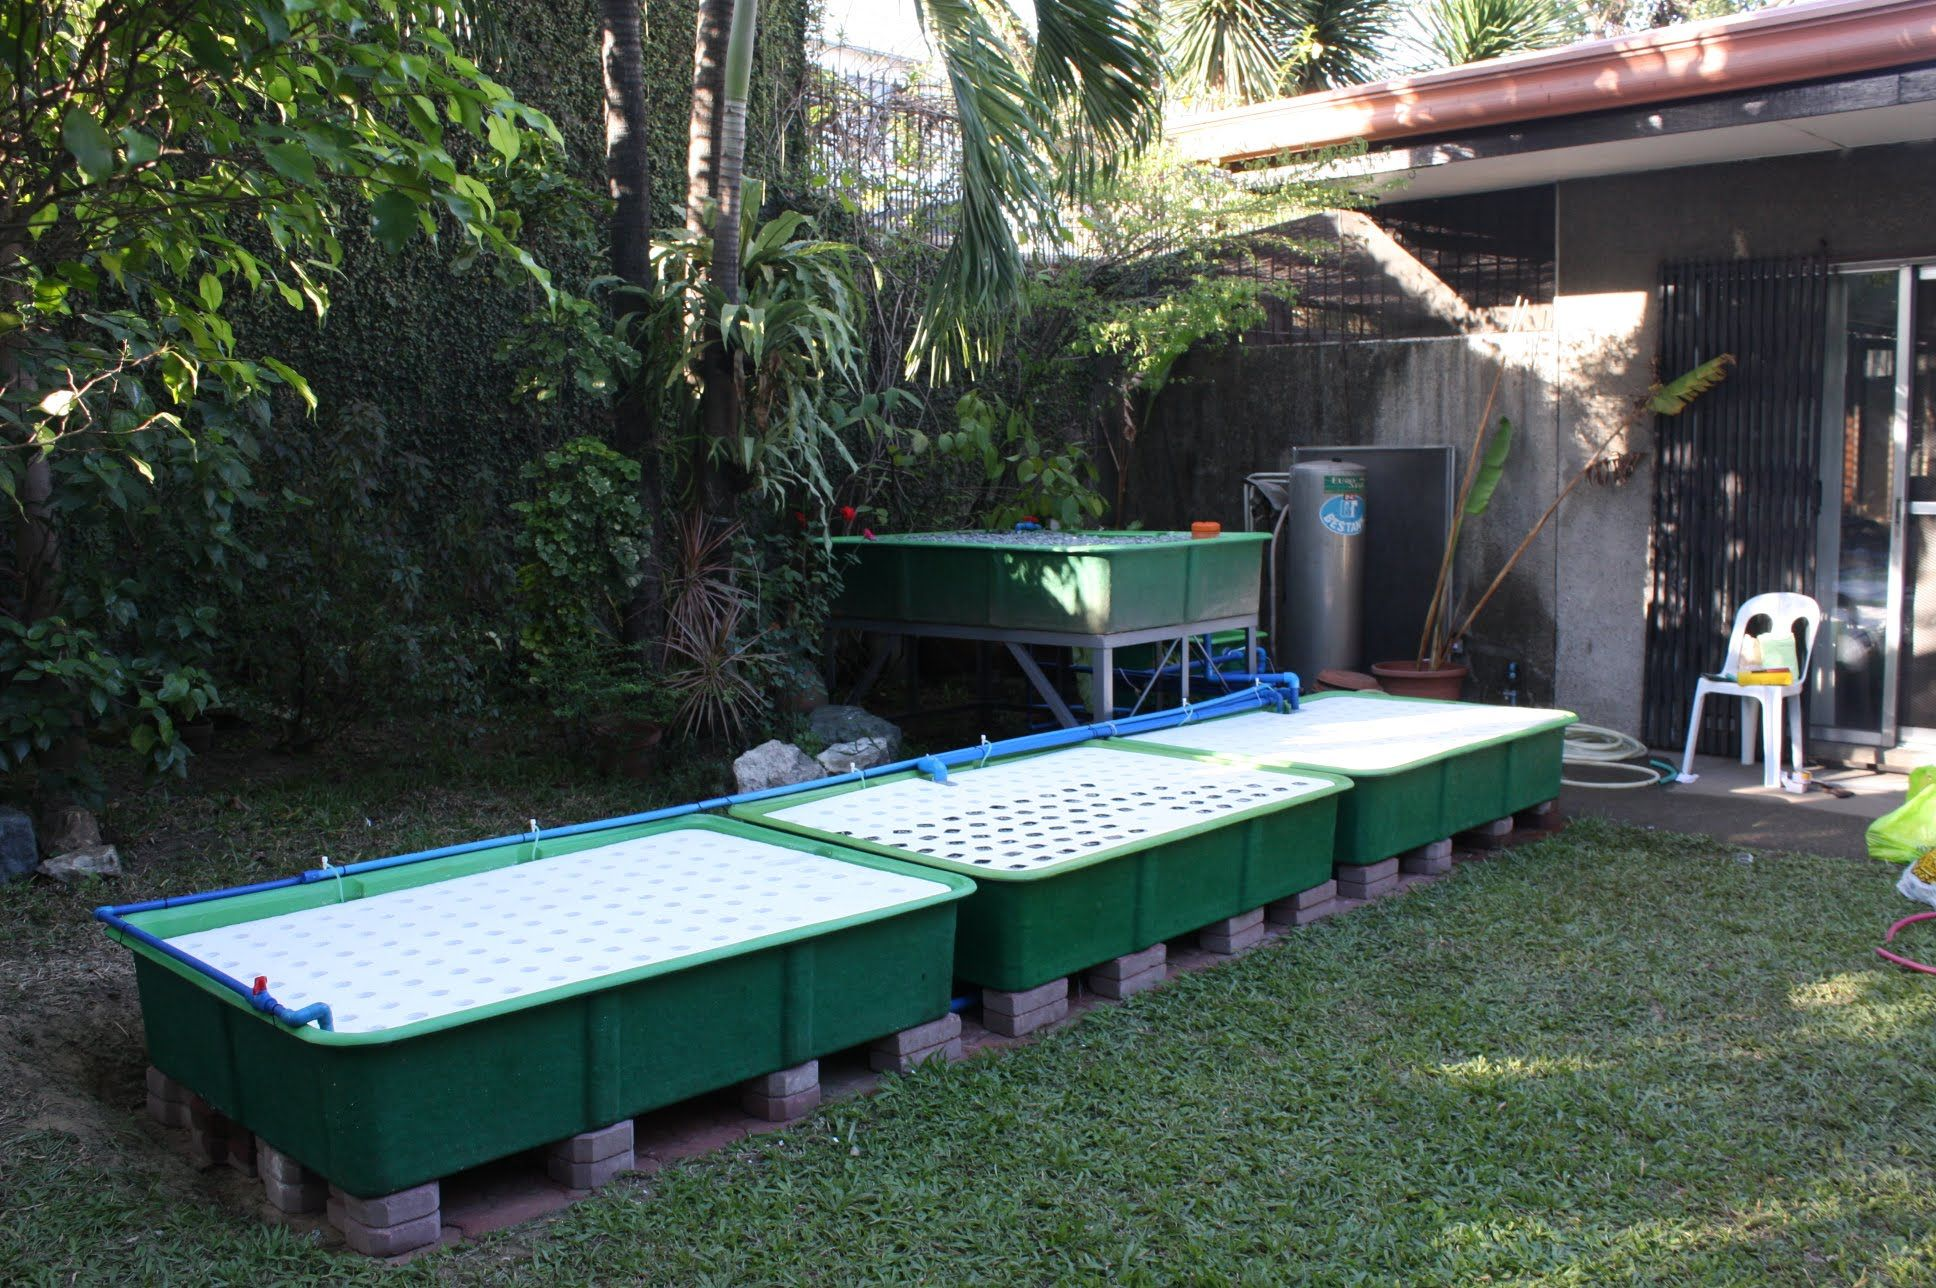 Modular Aquaponics Design and Equipment Remote Fish tank and Growbed